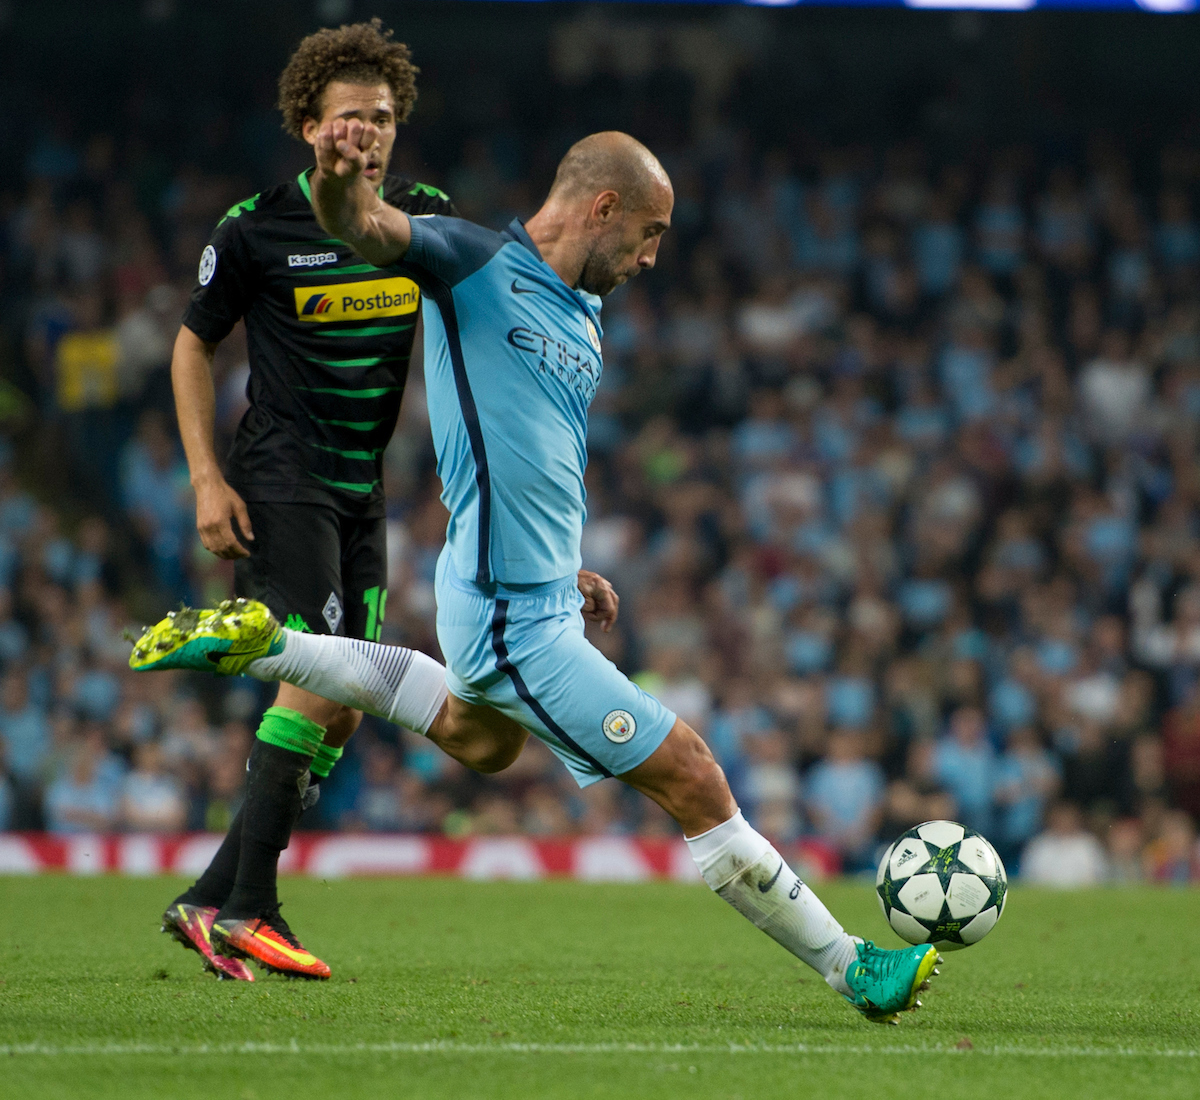 Pablo Zabaleta of Manchester City looks to shoot at goal during the UEFA Champions League match at the Etihad Stadium, Manchester Picture by Russell Hart/Focus Images Ltd 07791 688 420 14/09/2016